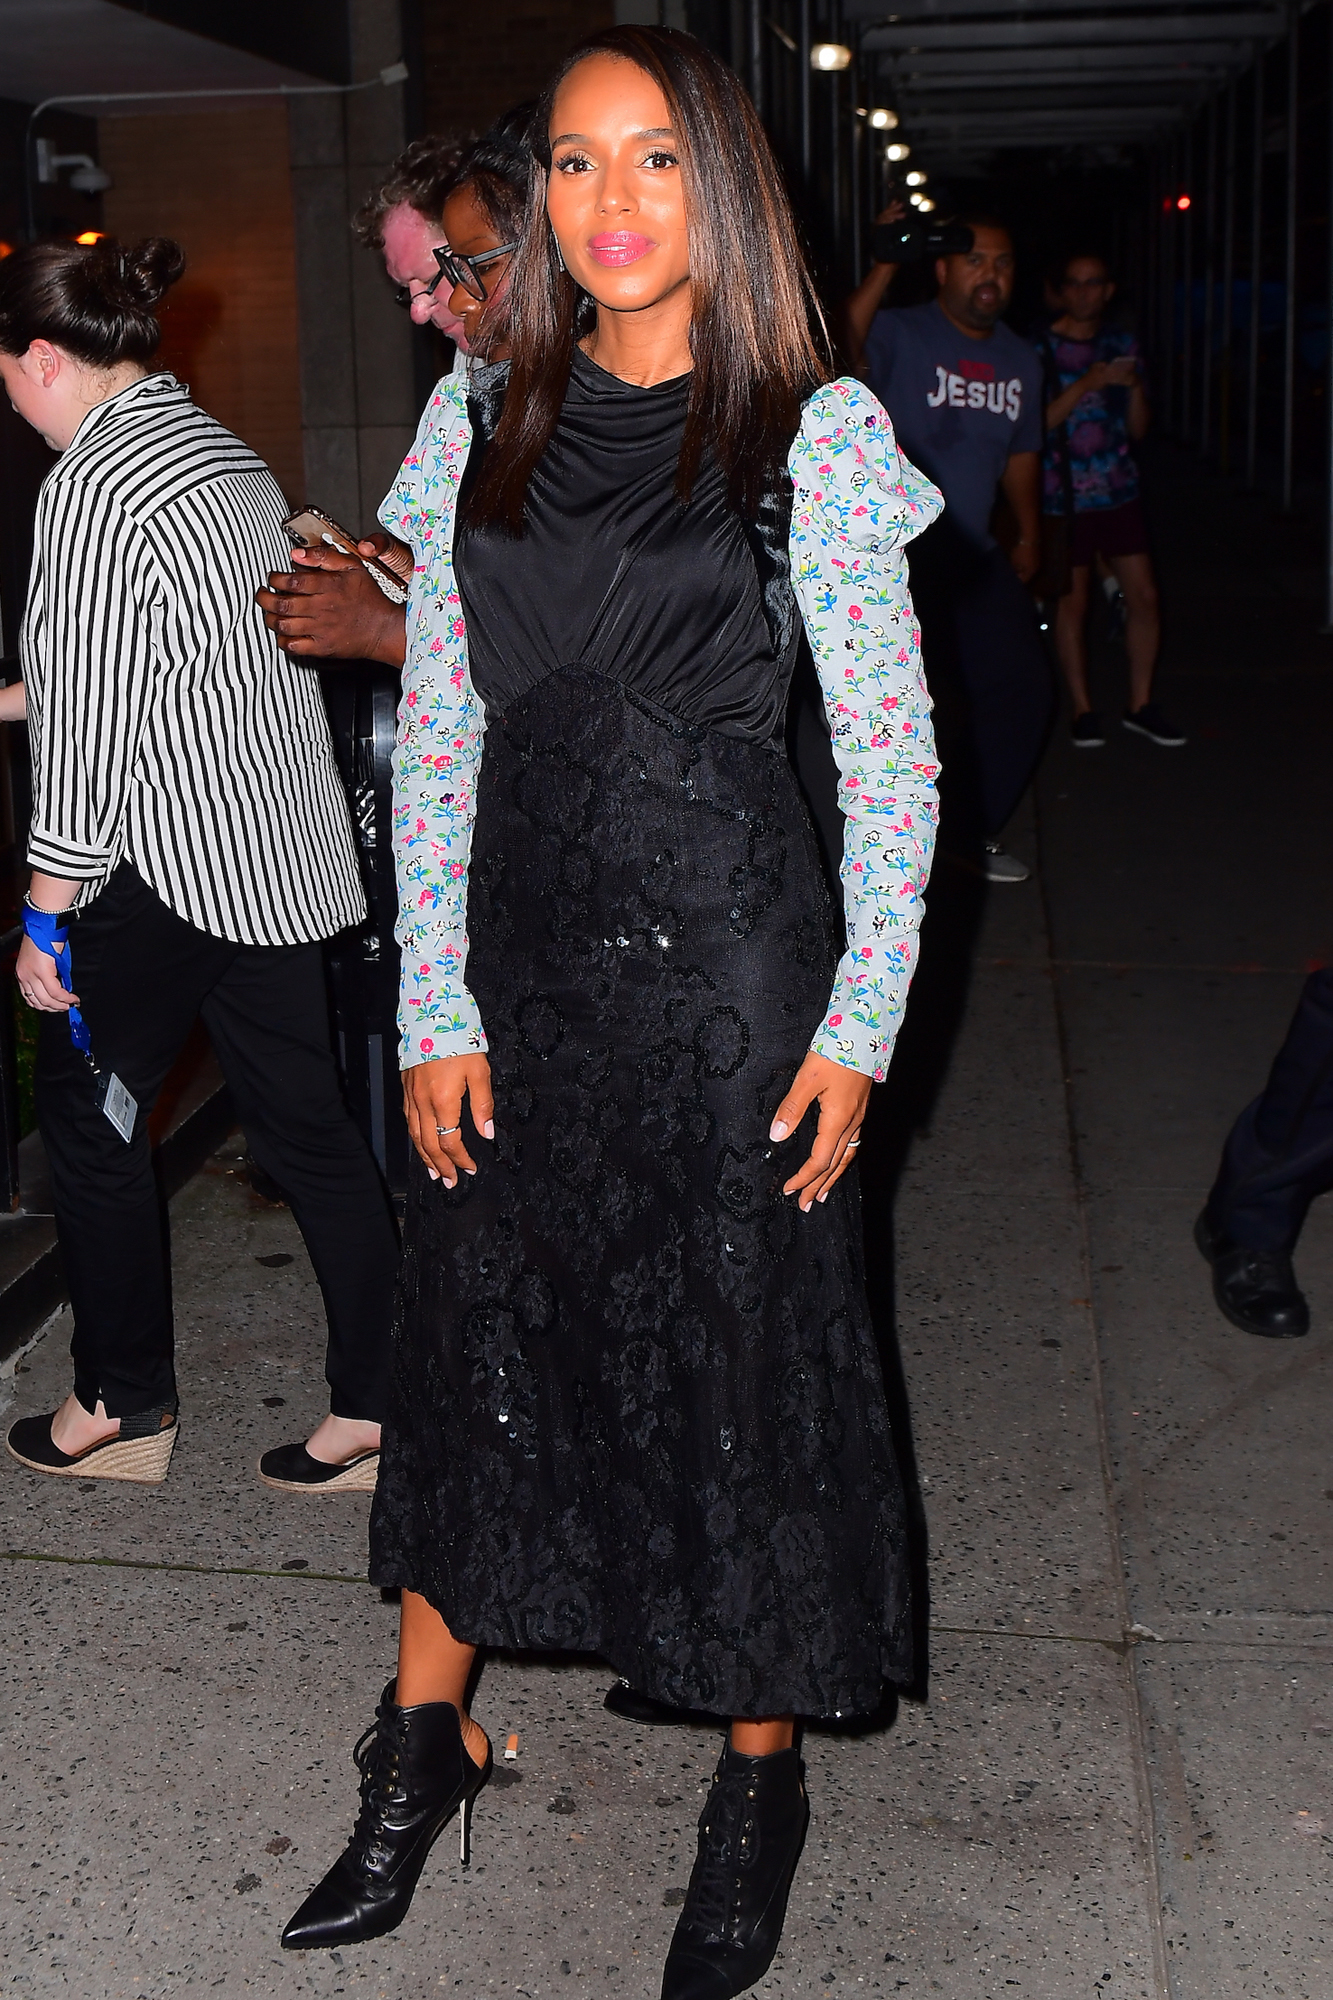 Kerry Washington Steps out in NYC as she Prepares for her Broadway Debut